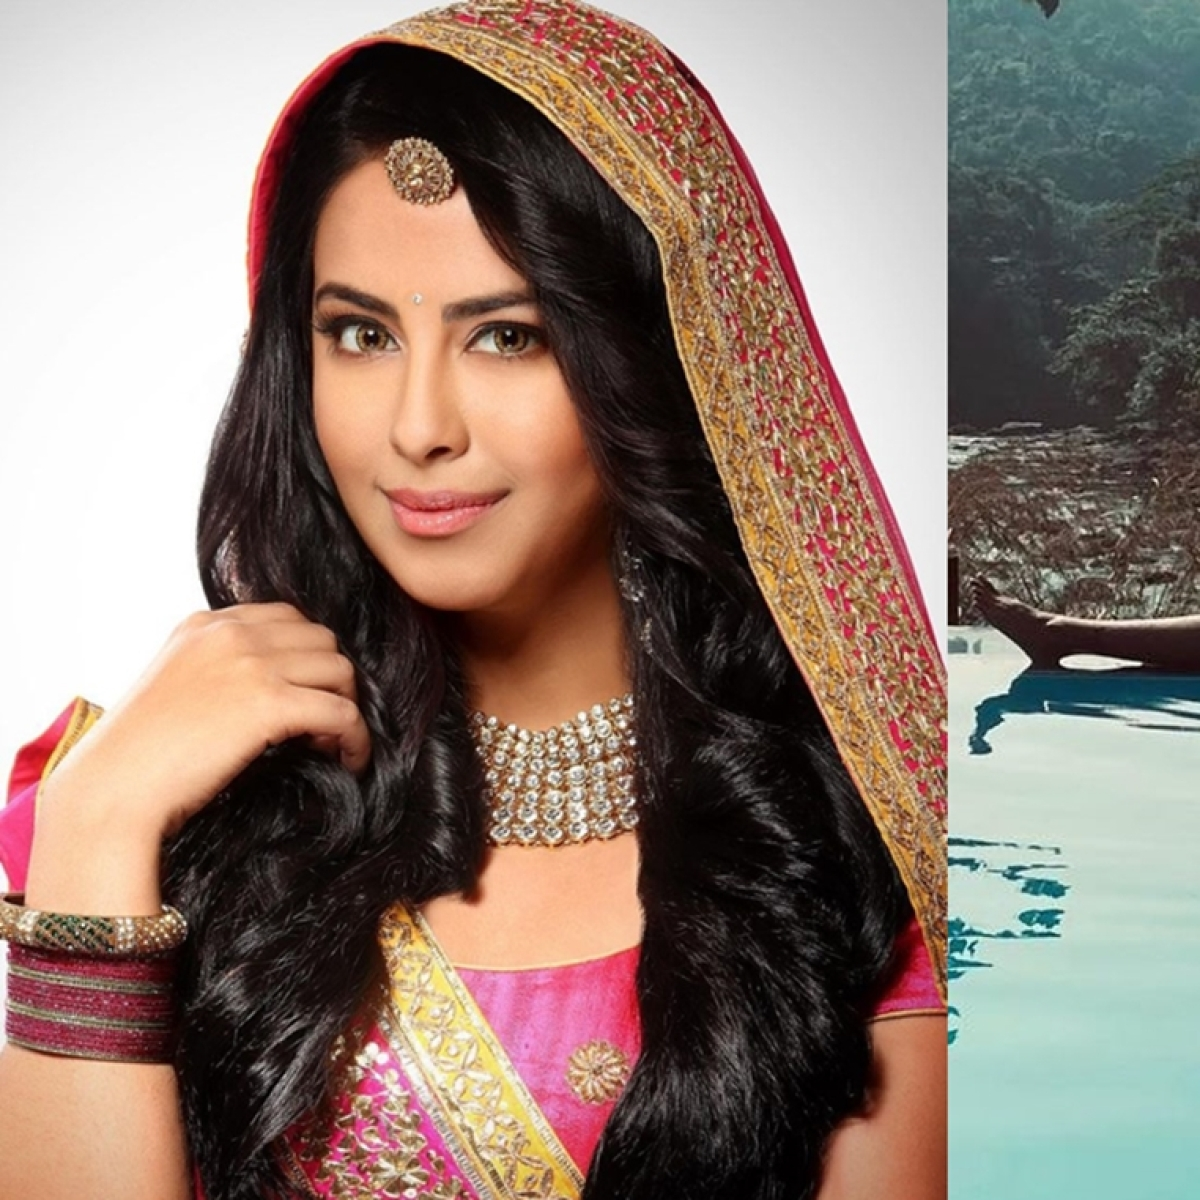 'Balika Vadhu' fame Avika Gor breaks the internet with her bikini pic after weight loss transformation